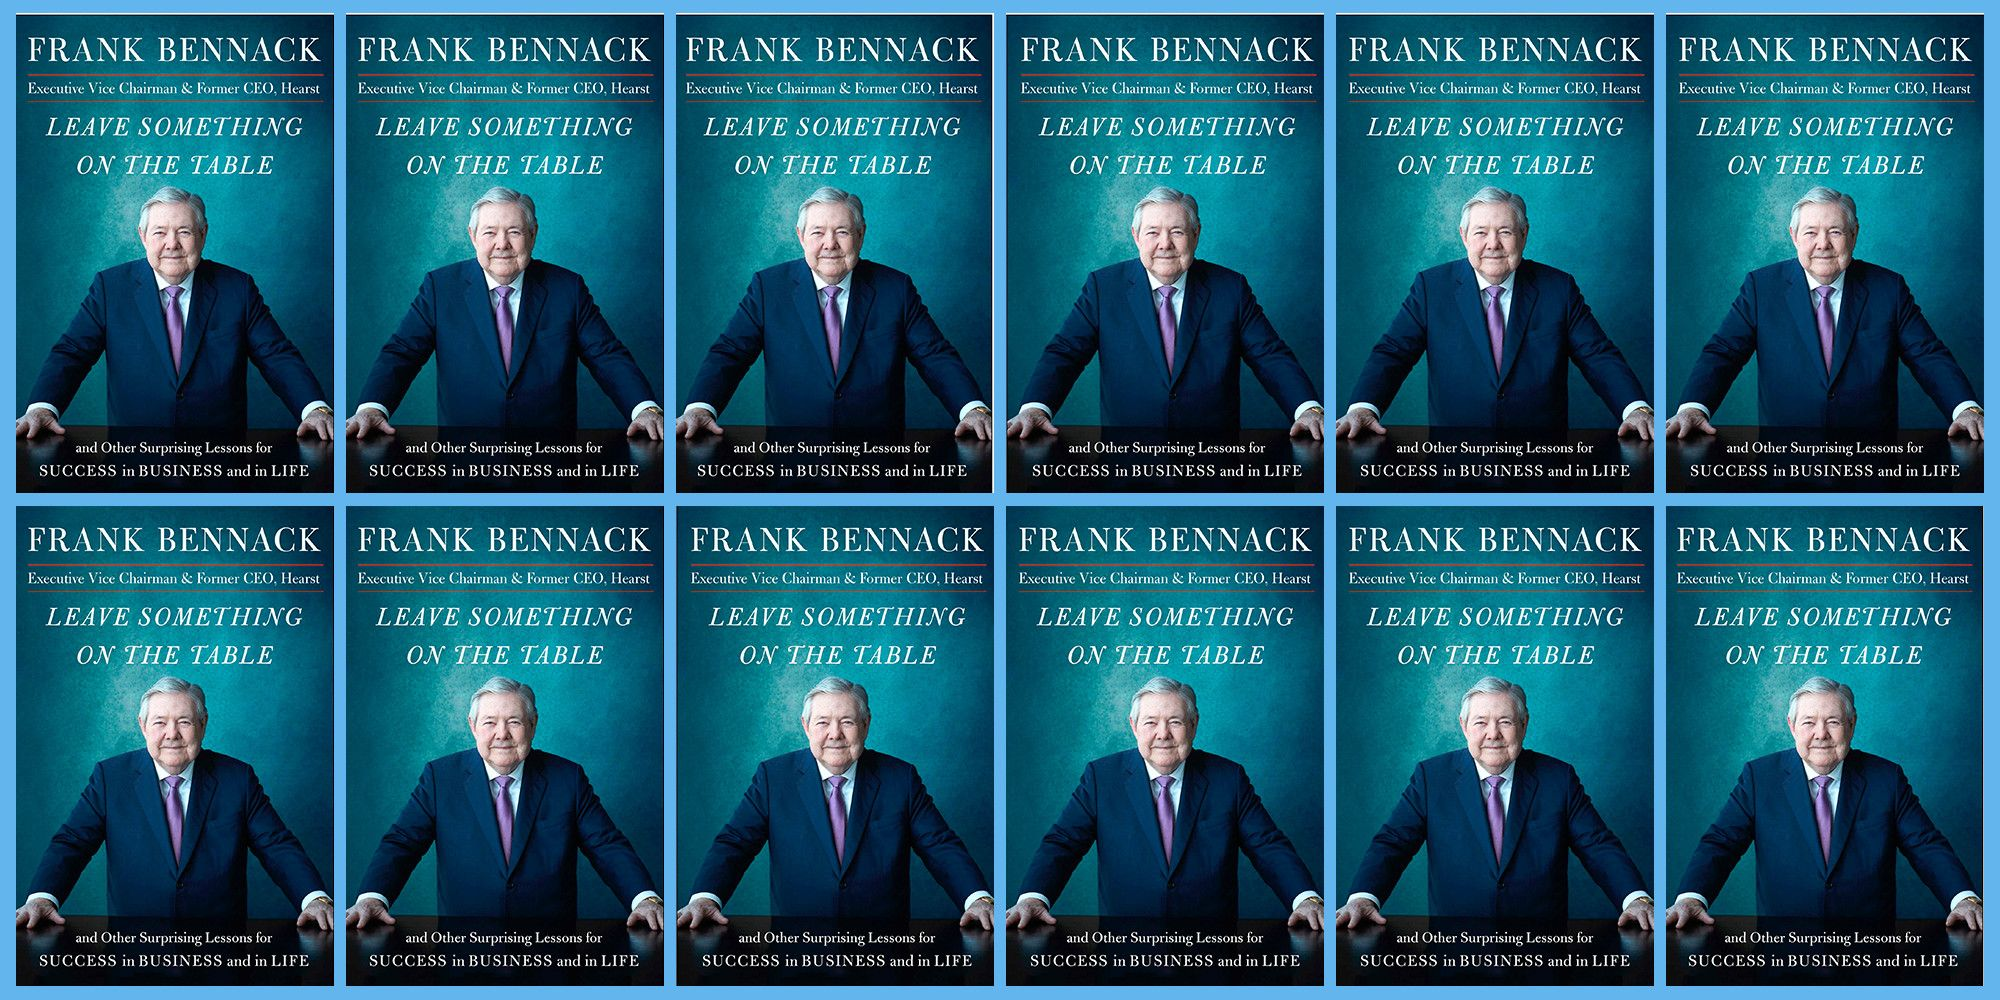 Frank Bennack Breaks Down the Pillars of Every Successful Business Today